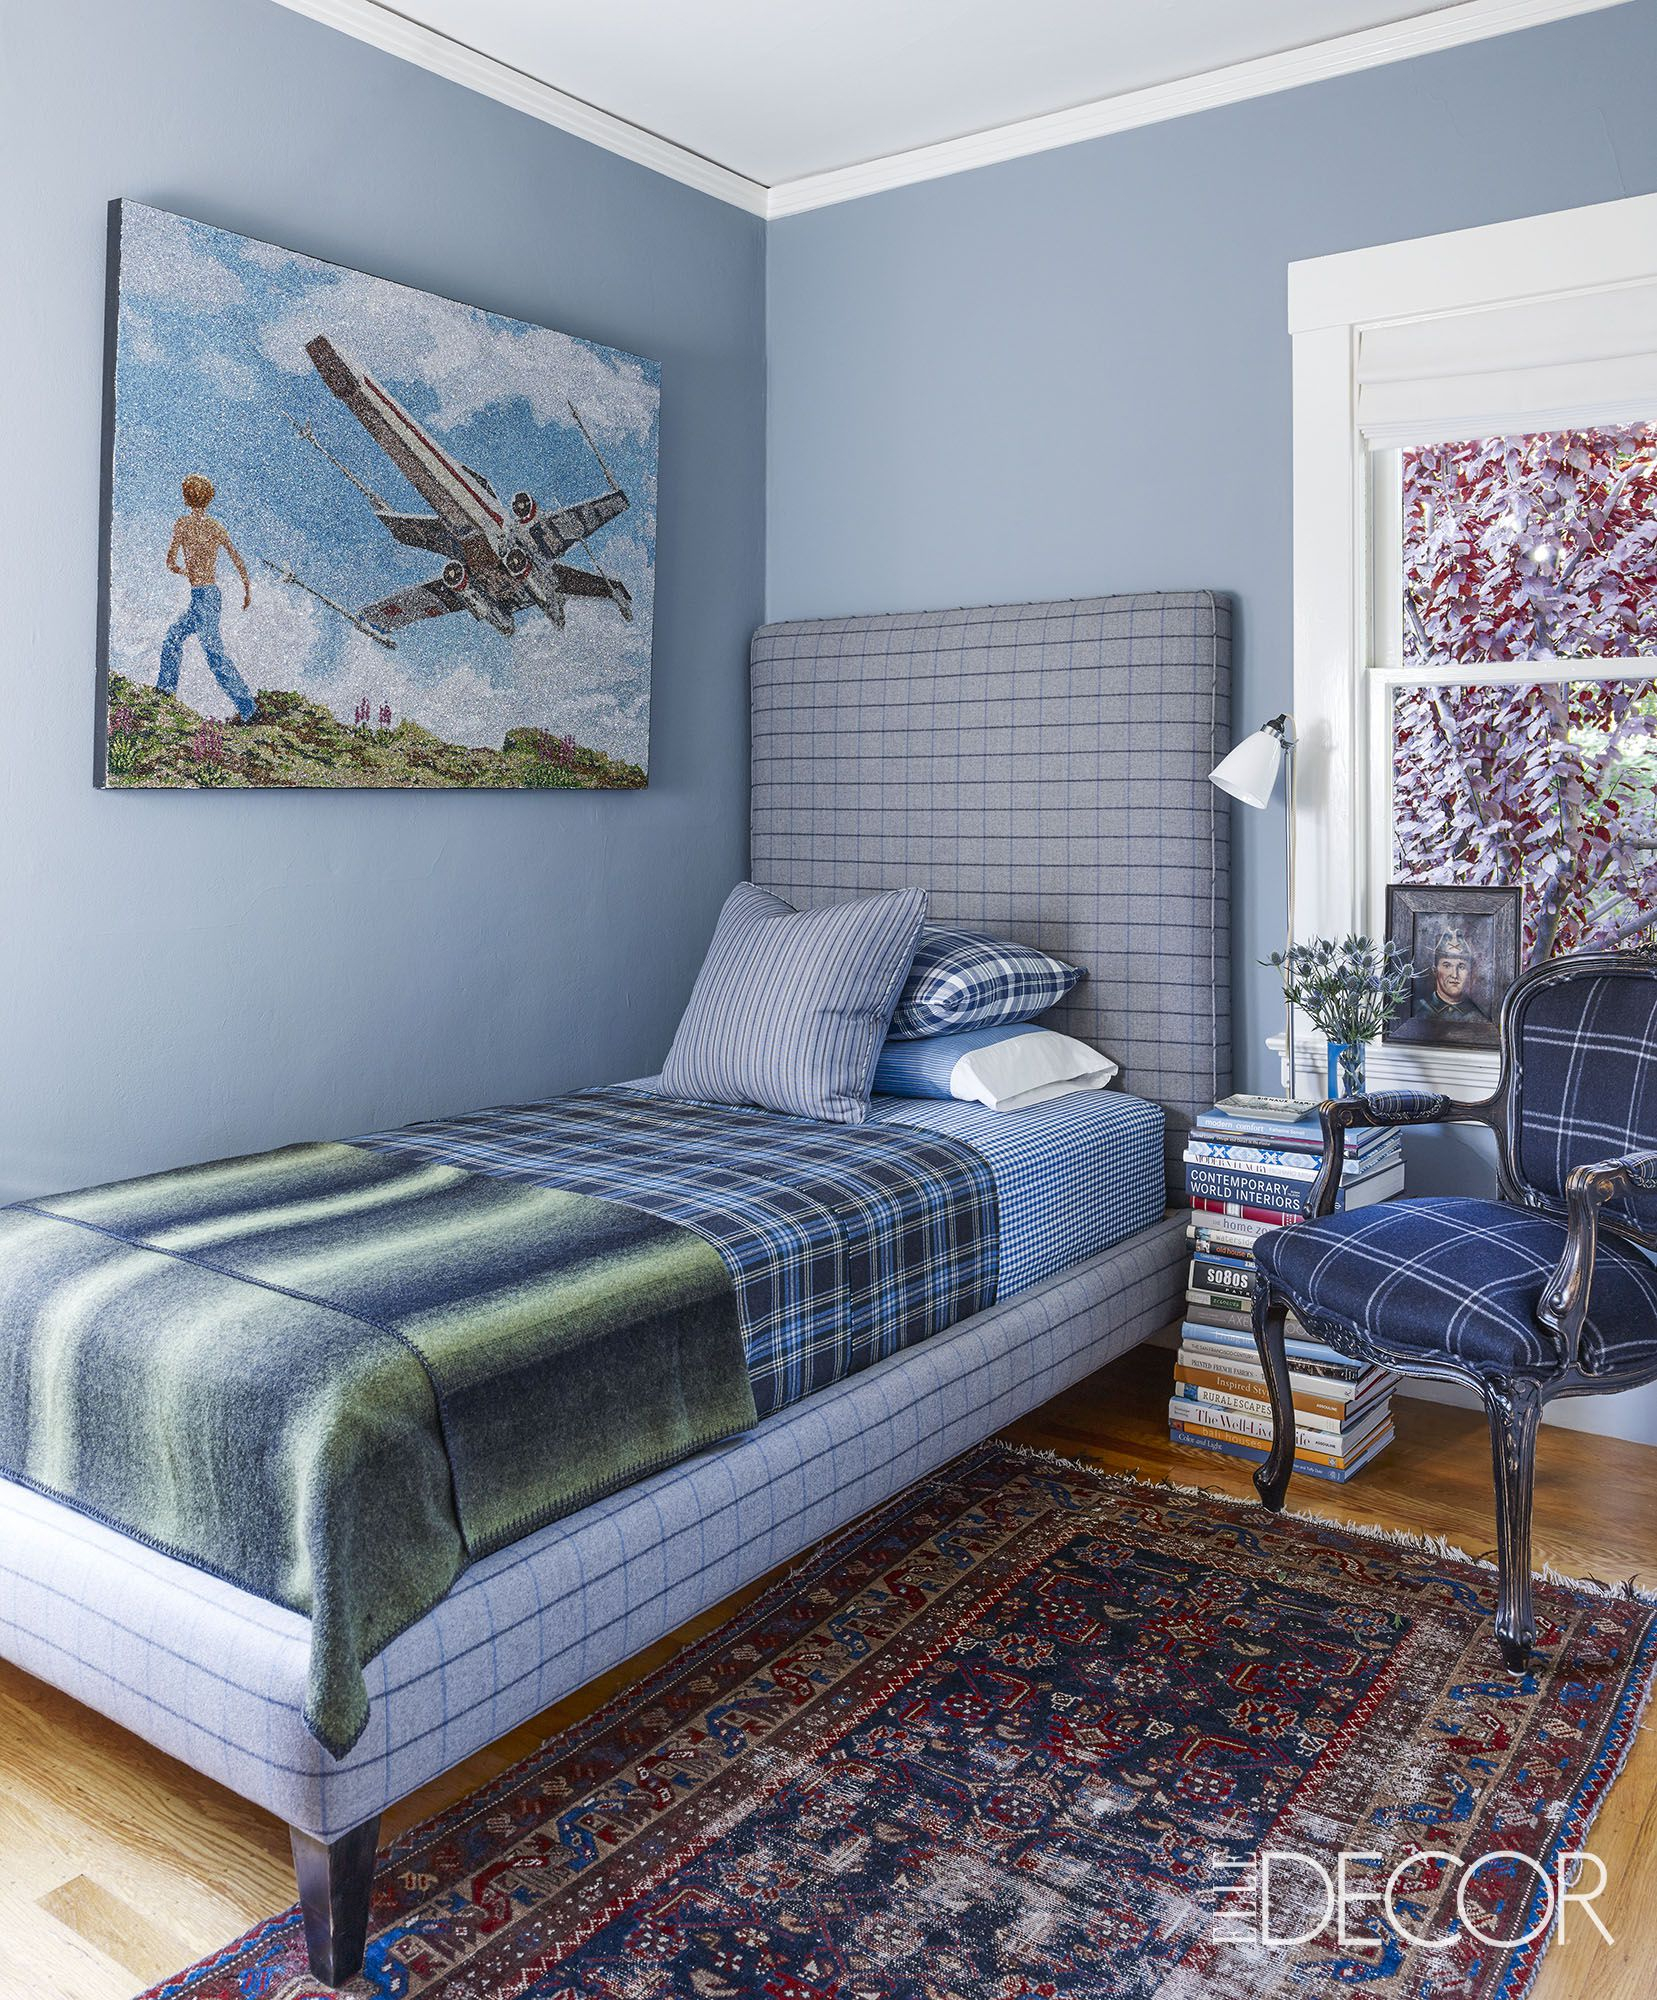 50 Small Bedroom Design Ideas Decorating Tips For Small Bedrooms inside 15 Some of the Coolest Designs of How to Build Modern Bedroom Designs For Small Rooms